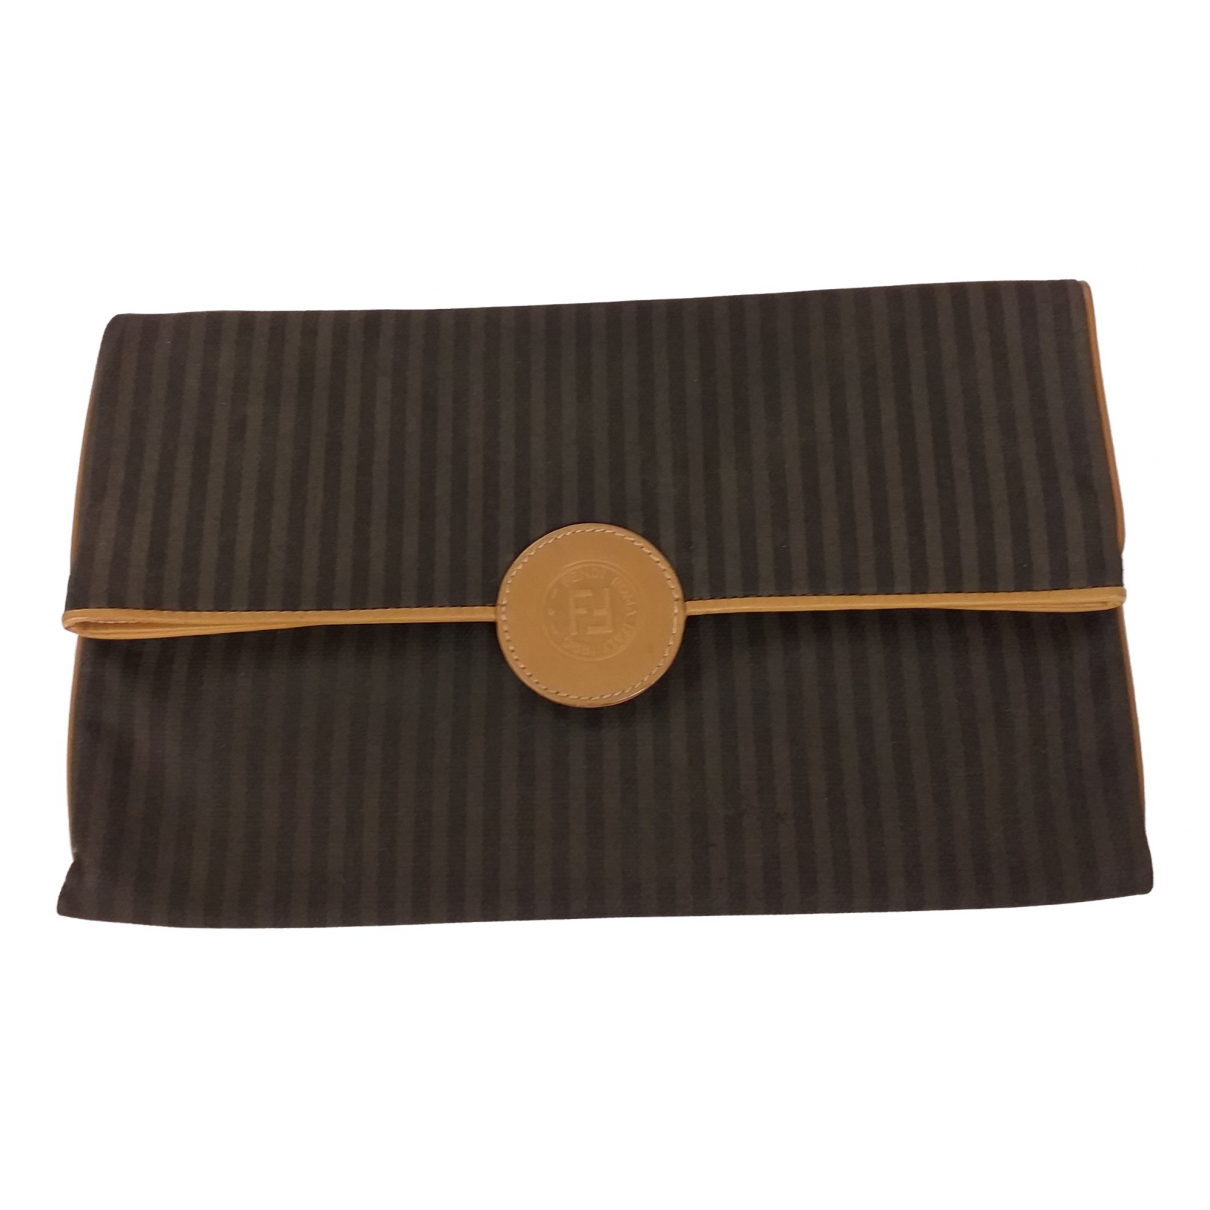 Fendi \N Beige Cloth Clutch bag for Women \N